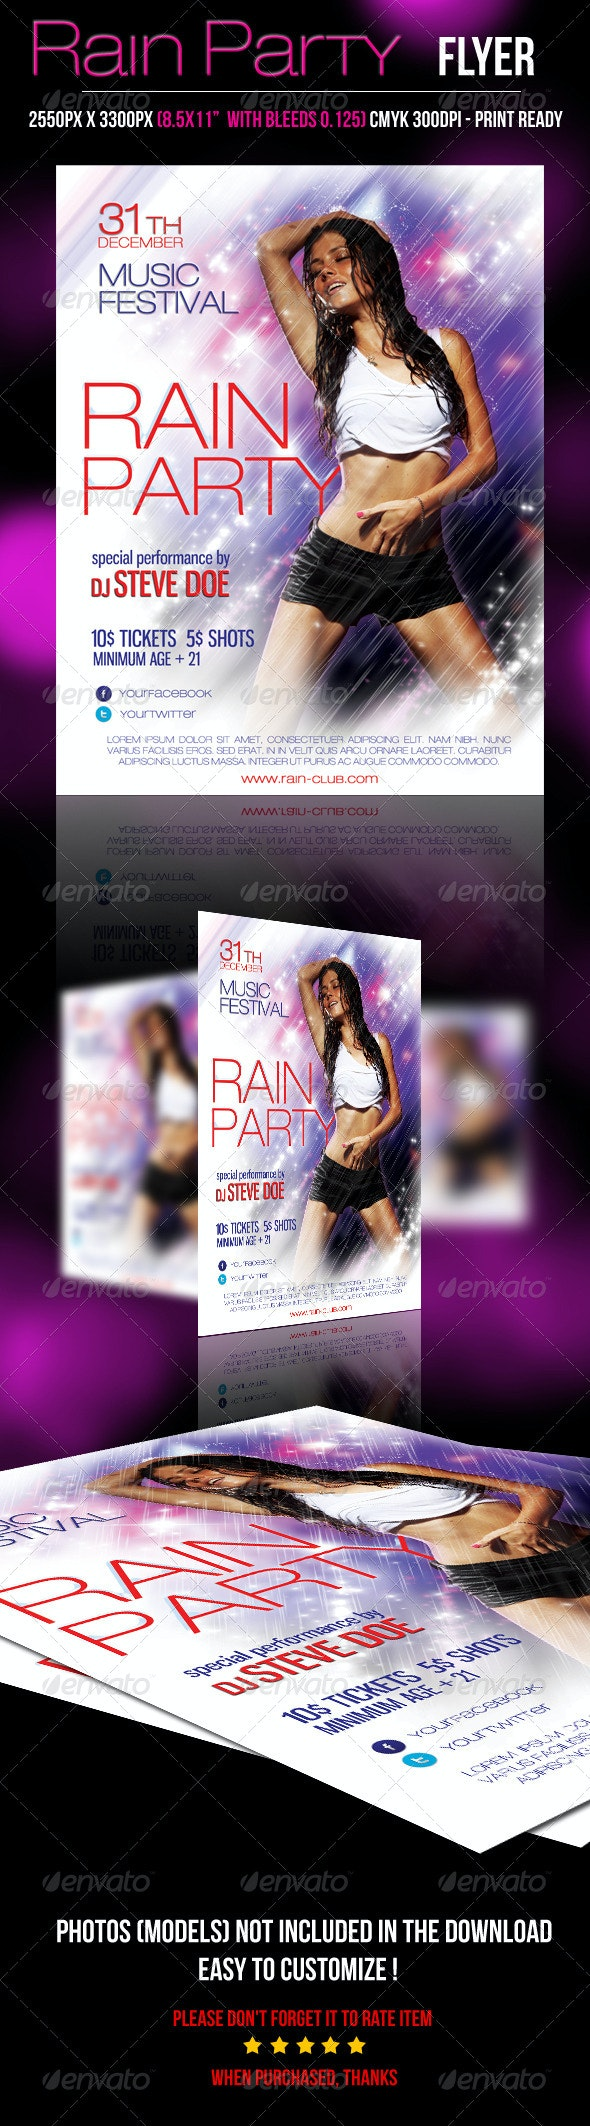 Rain Party Flyer - Clubs & Parties Events